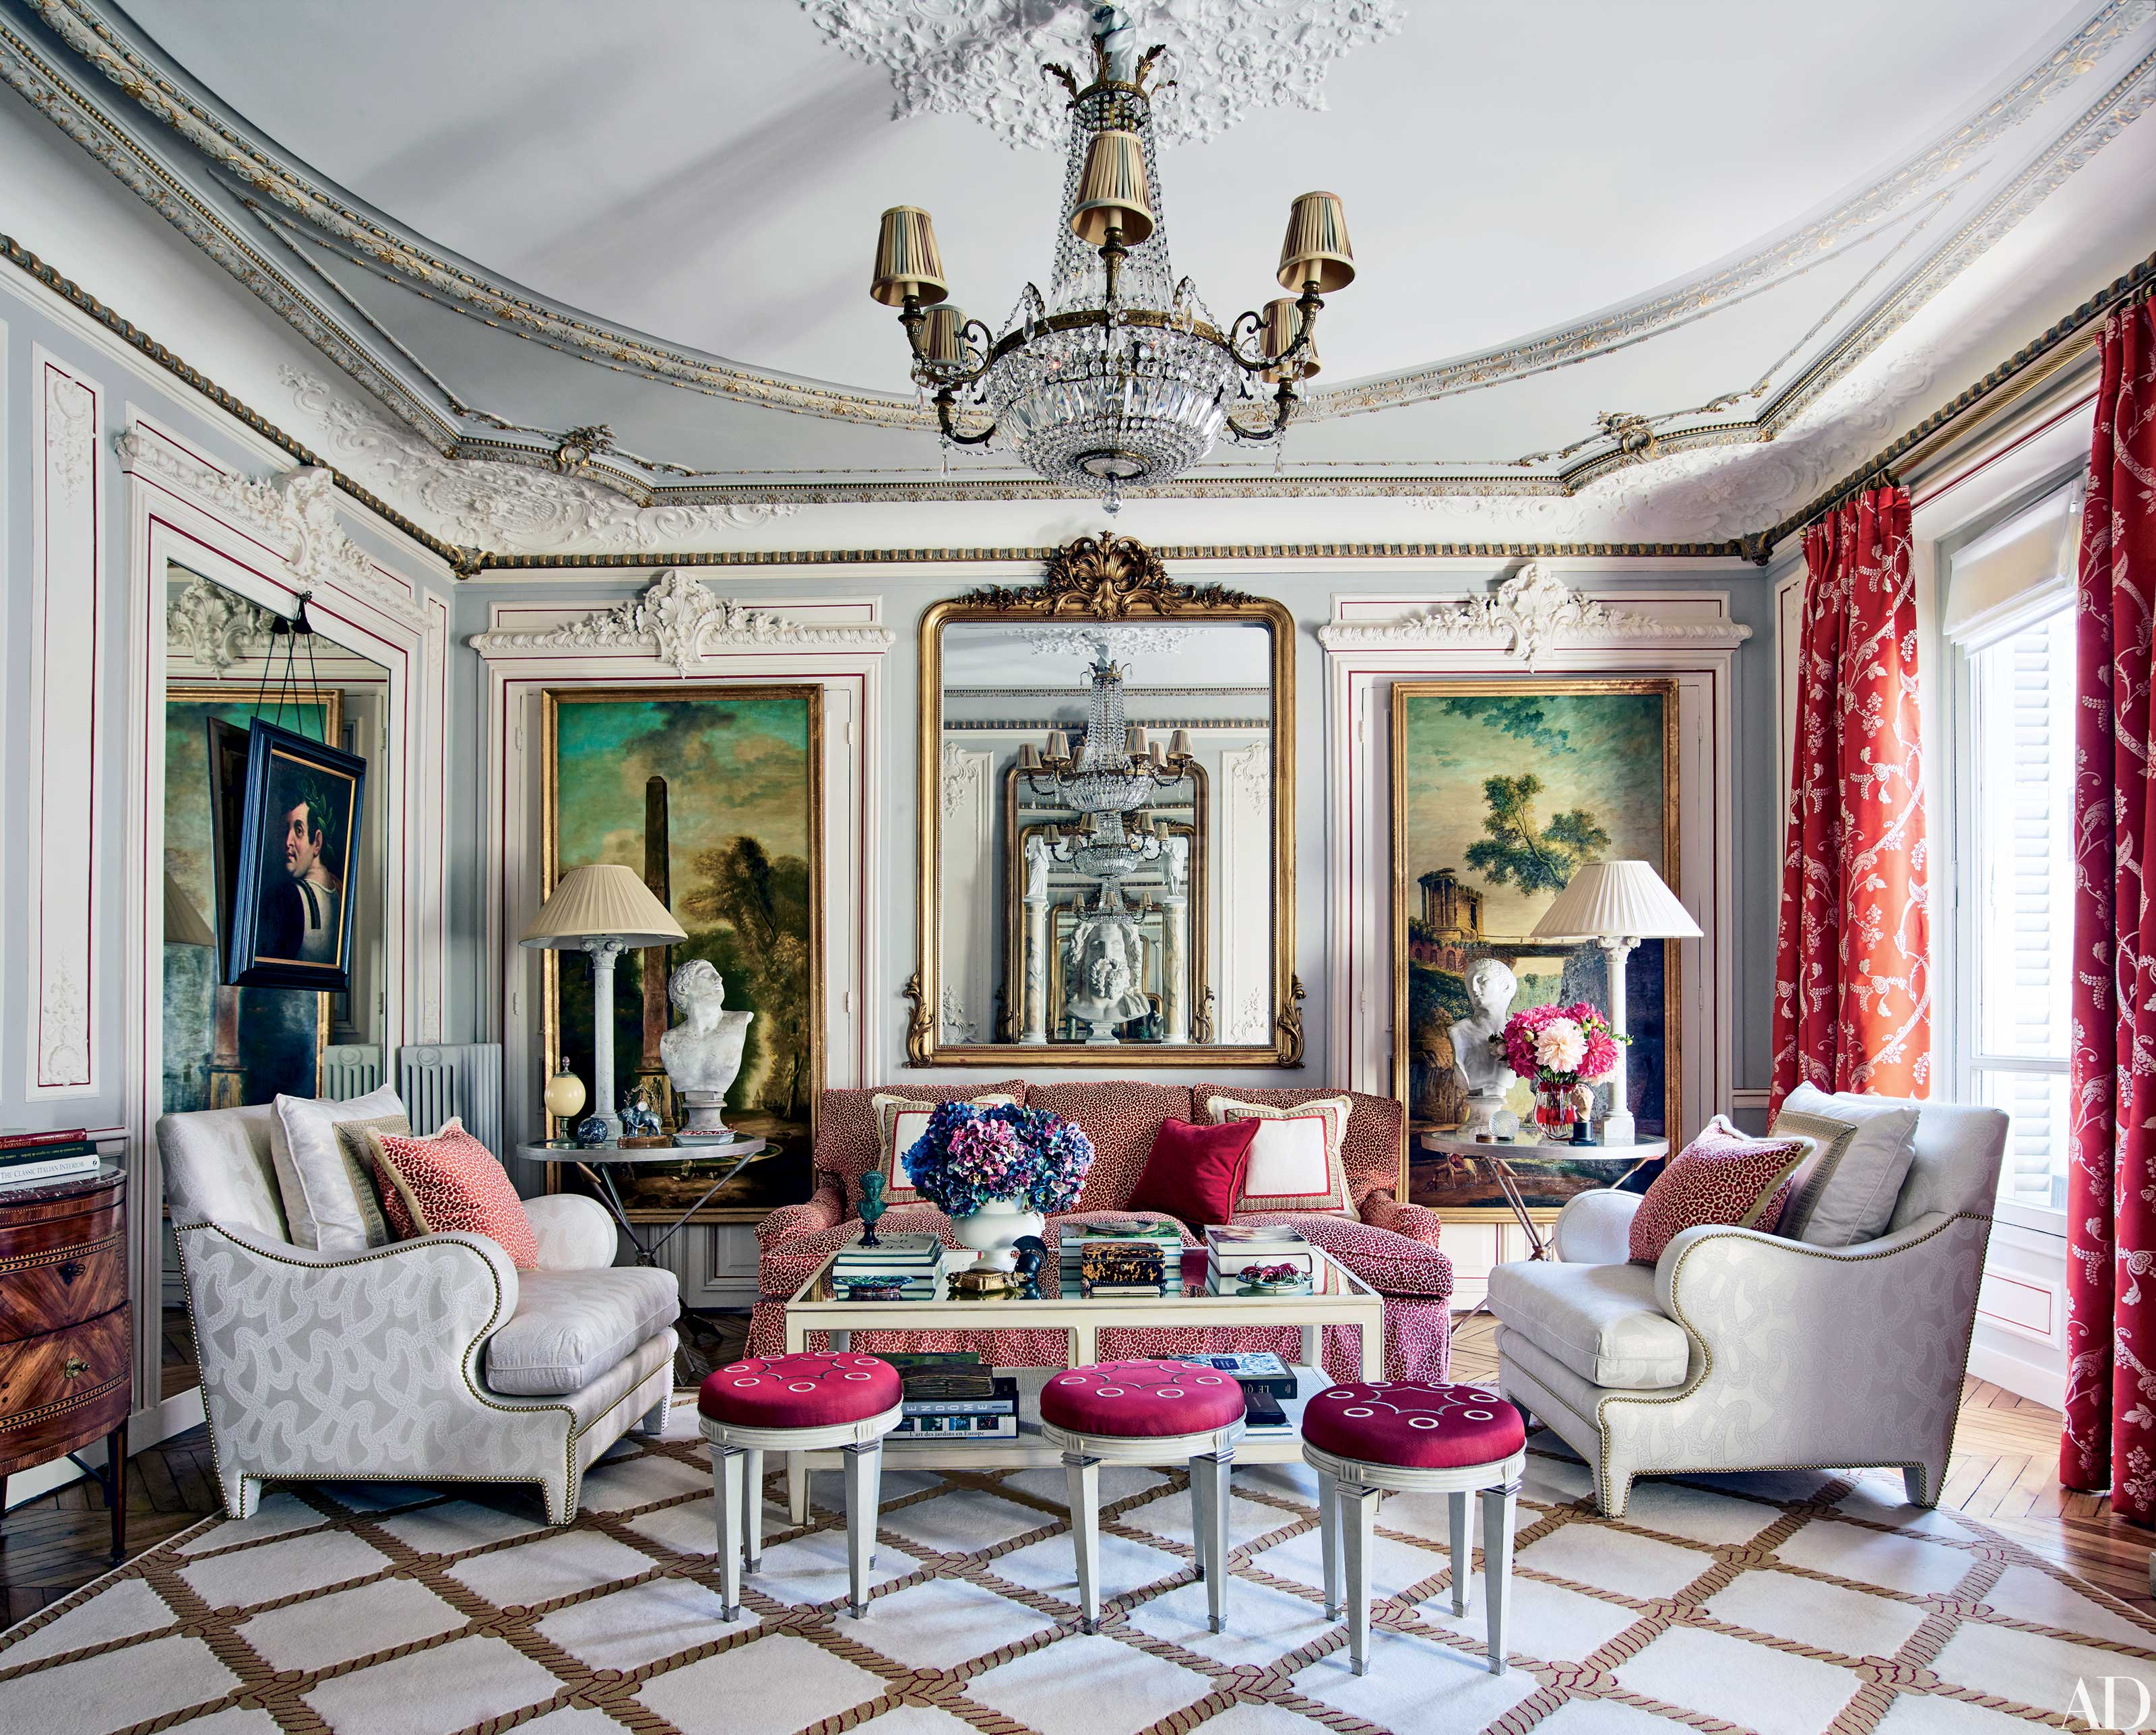 modern living room styles perfect paint color for small 31 ideas from the homes of top designers architectural digest